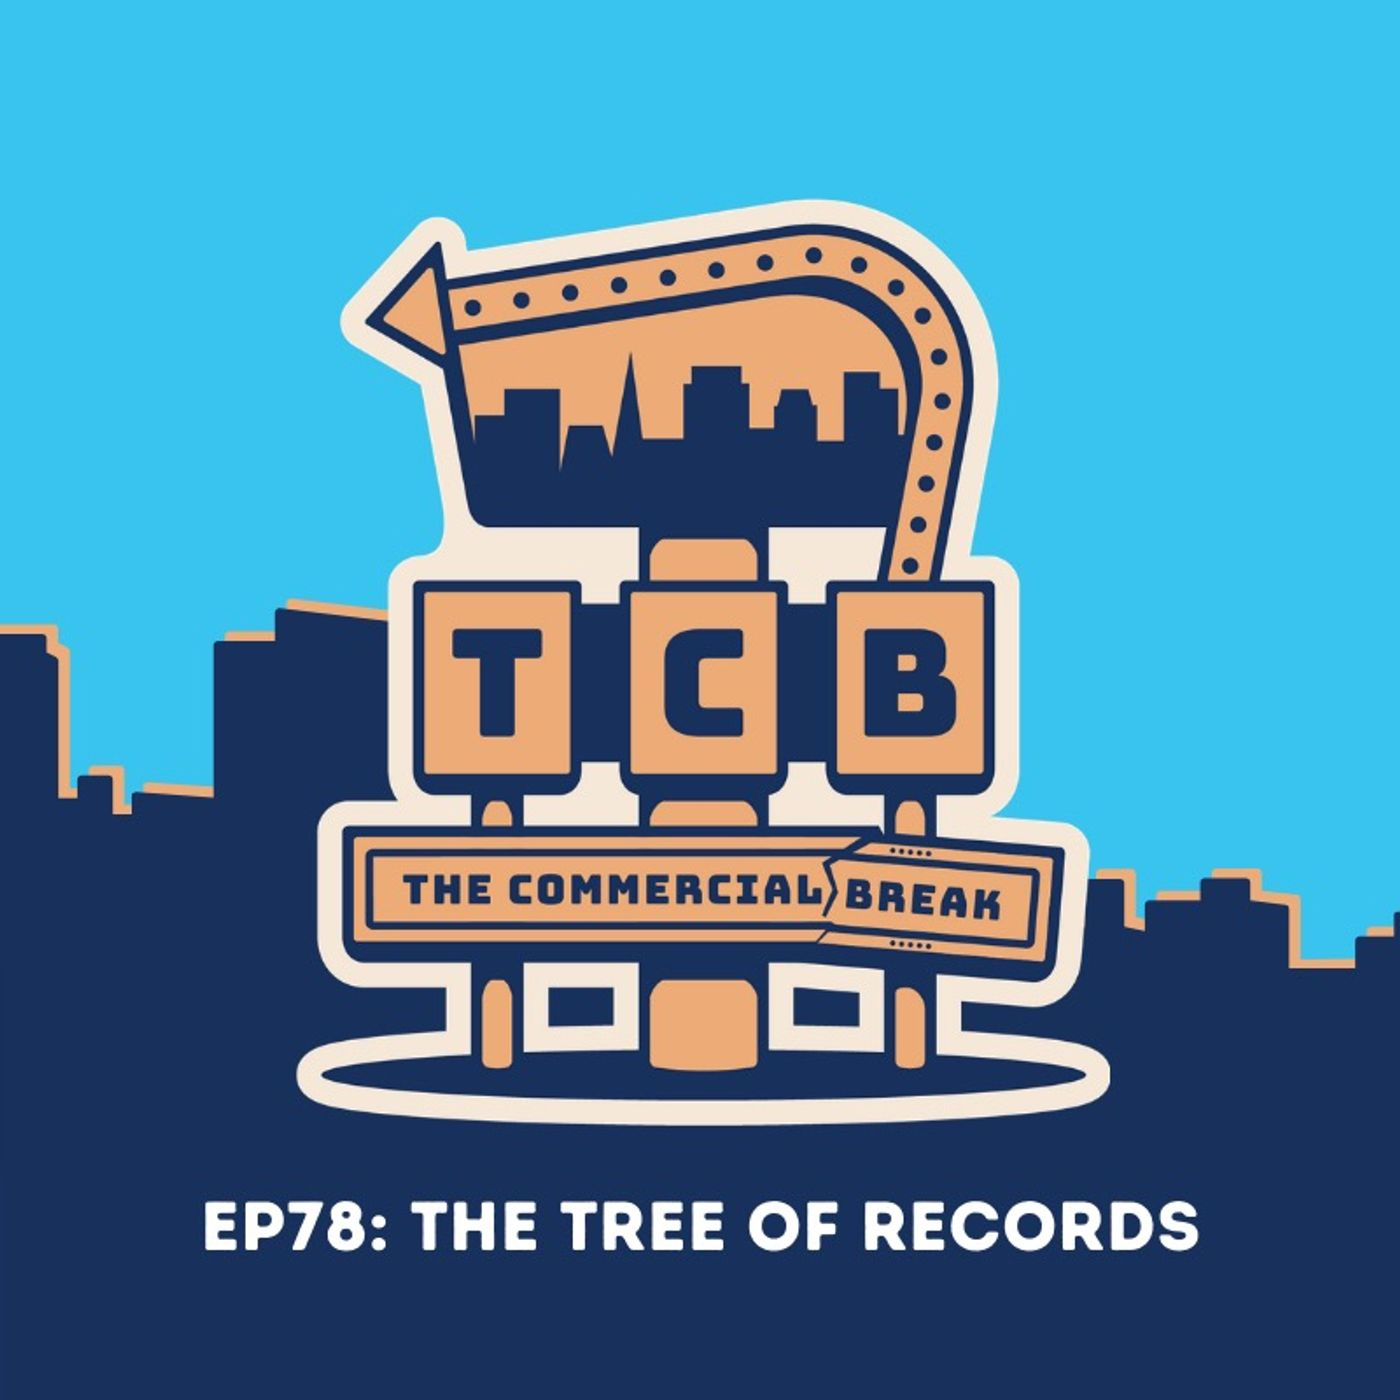 EP78: The Tree Of Records